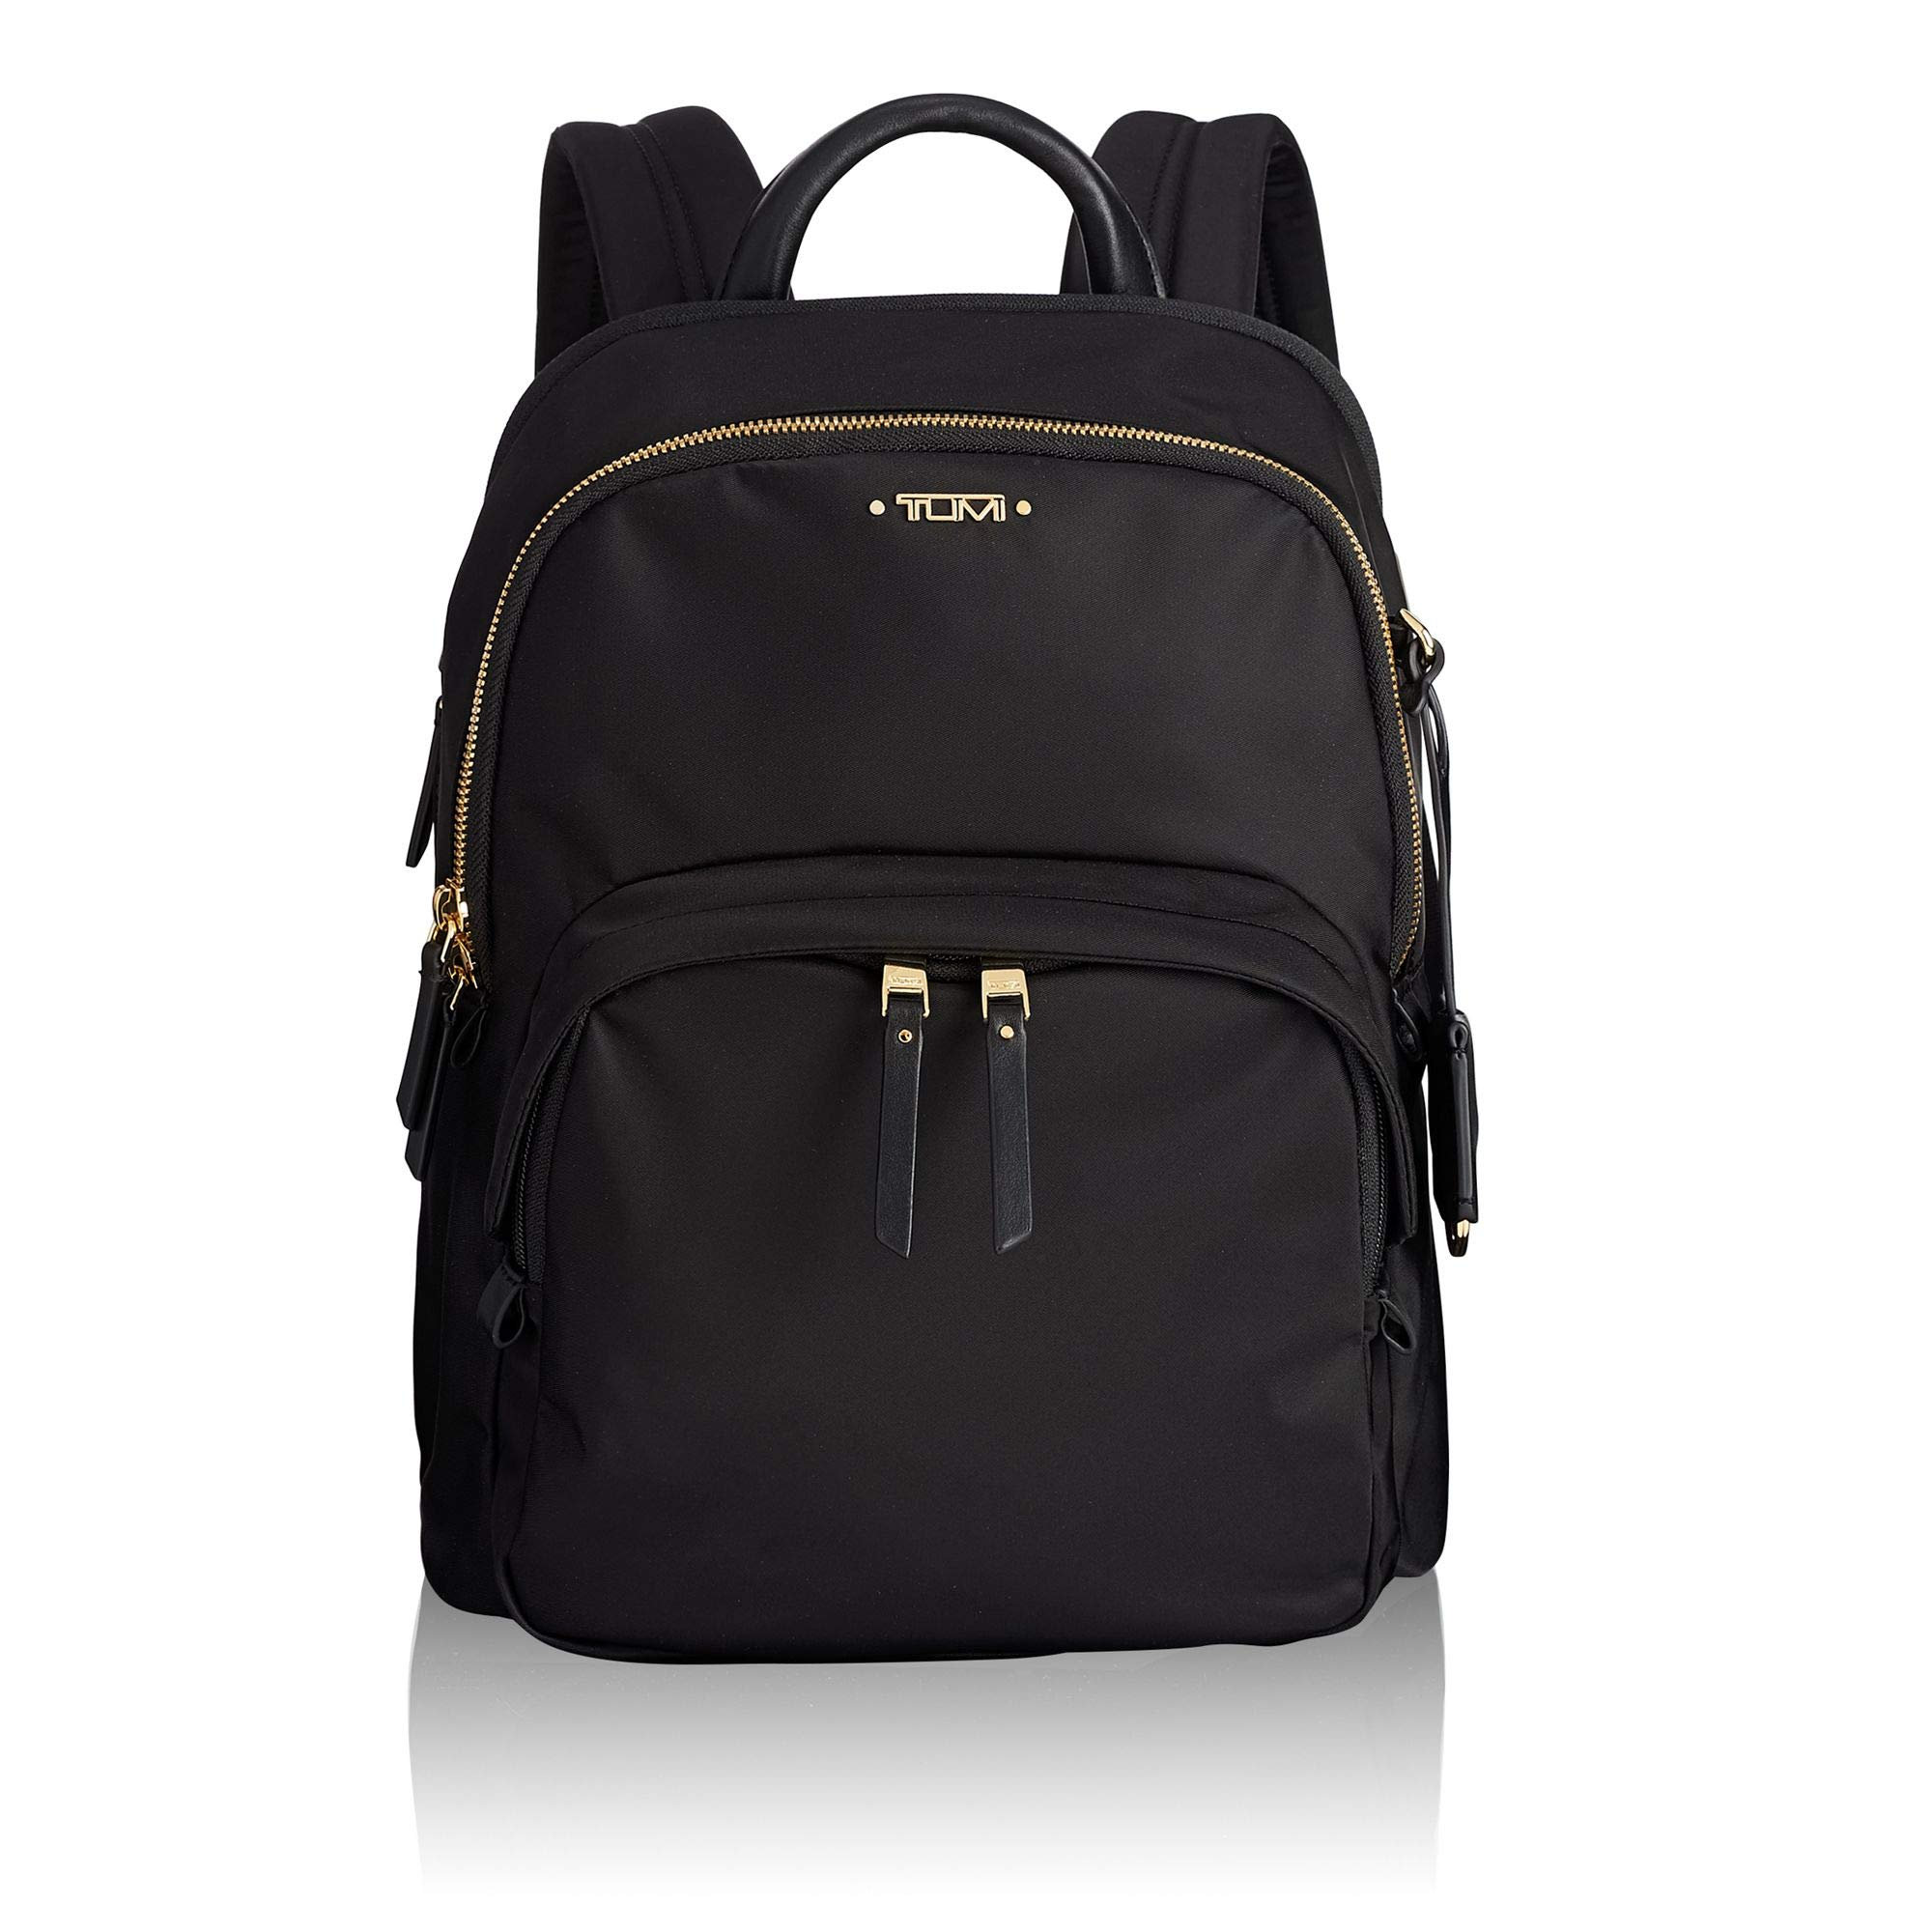 TUMI Women's Voyageur Dori Backpack, Black